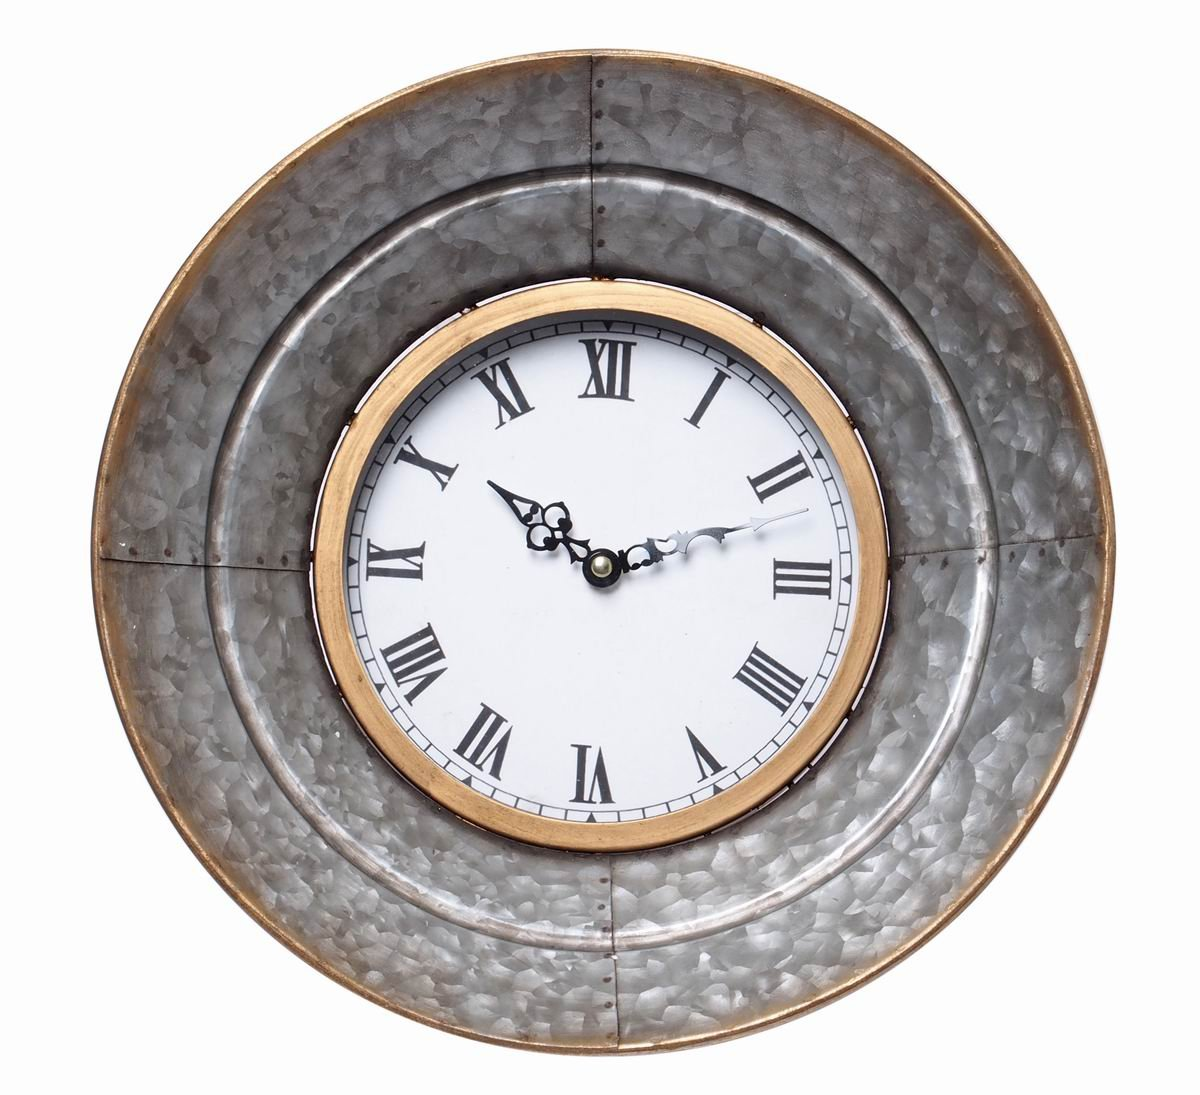 Hosley Metal Wall Clock- 13.3'' Diameter. Rustic Aged Galvanized Silver Finish. Country Farm House Style. Ideal Weddings, Special Occasions Wall Decor, Home, Spa, Aromatherapy, Reiki P2